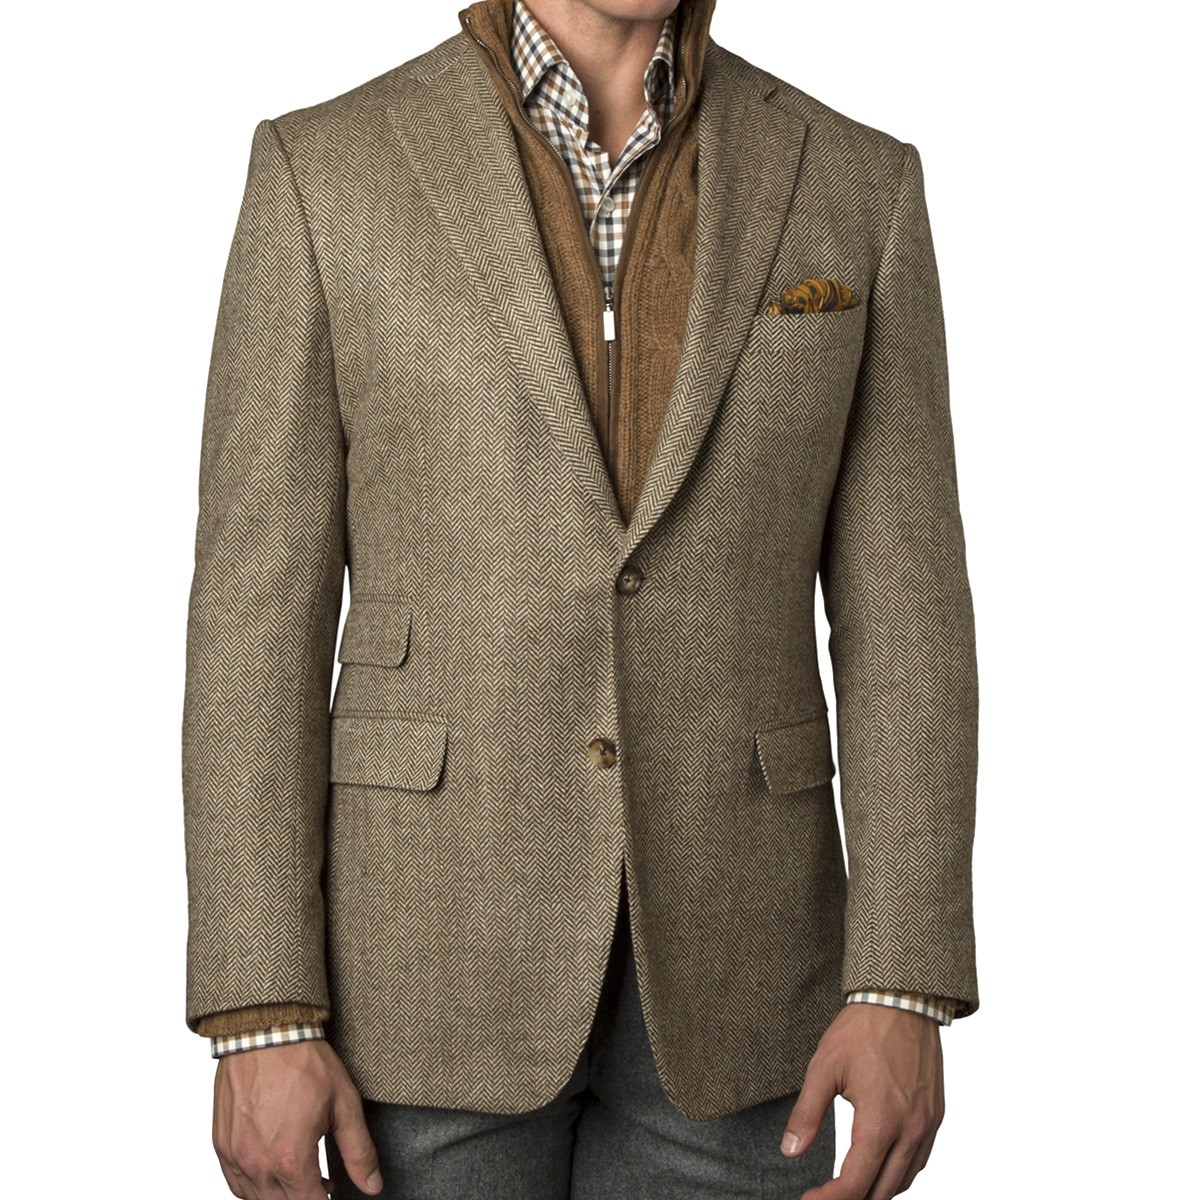 Our Collection sportcoats feature fine vintage details with a modern approach creating classic looks that will complete your dress- and professional-wear look. Tailored fit. Two button, side vent, notch lapel. Patterned poly blend lining. Three inch lapel. Soft shoulder construction.